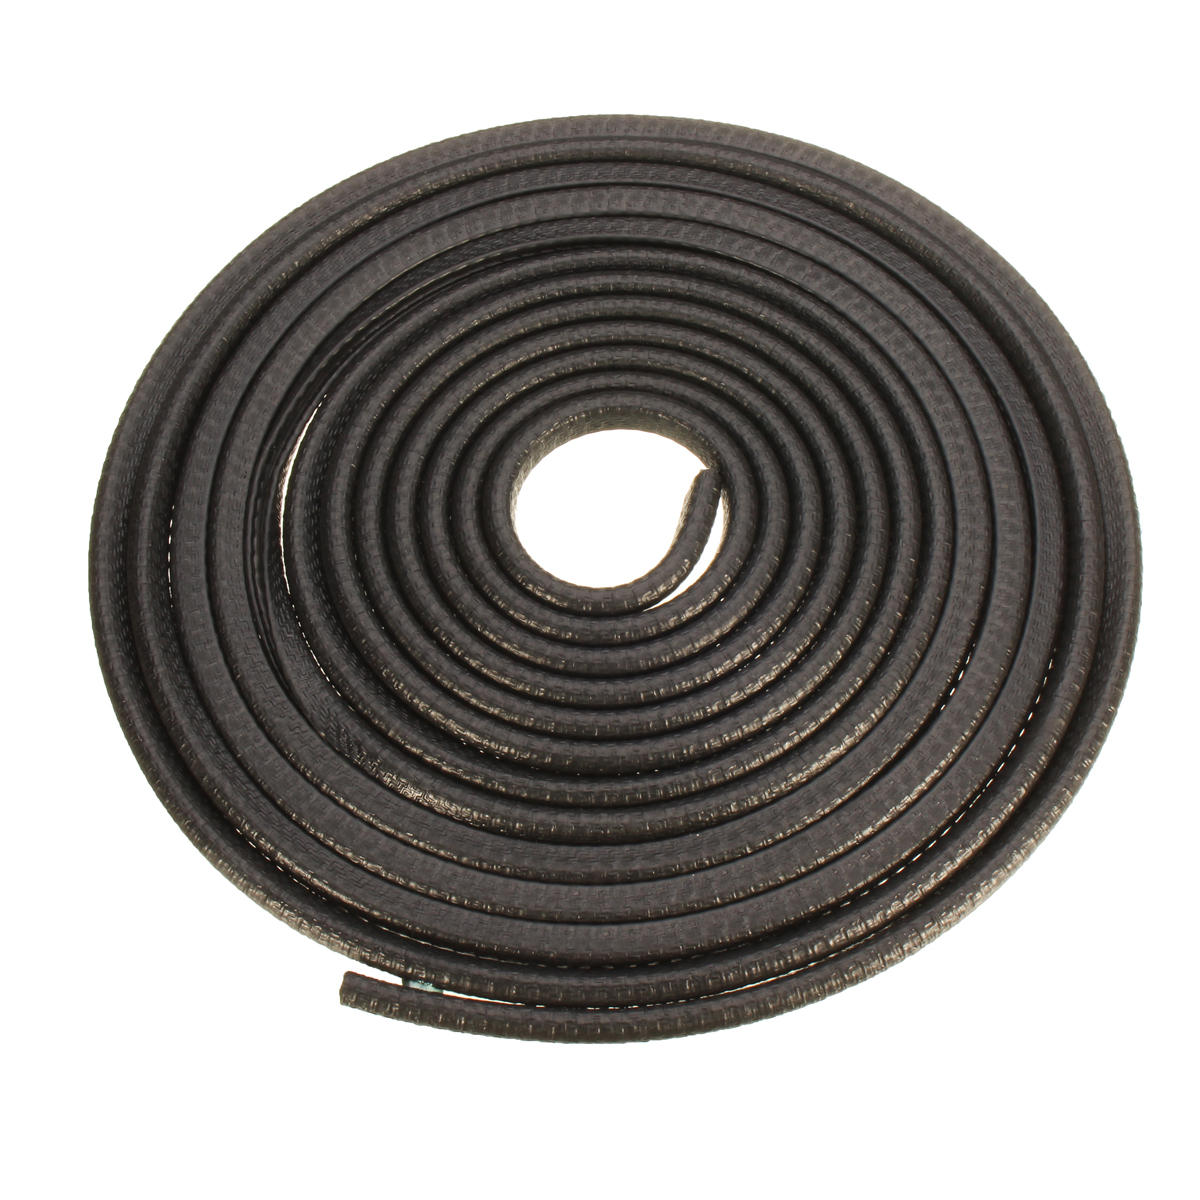 Rubber Seal Strip 500cm U Shape Car Door Edge Weather Rubber Seal Strip Sealing Guard Mold Trim